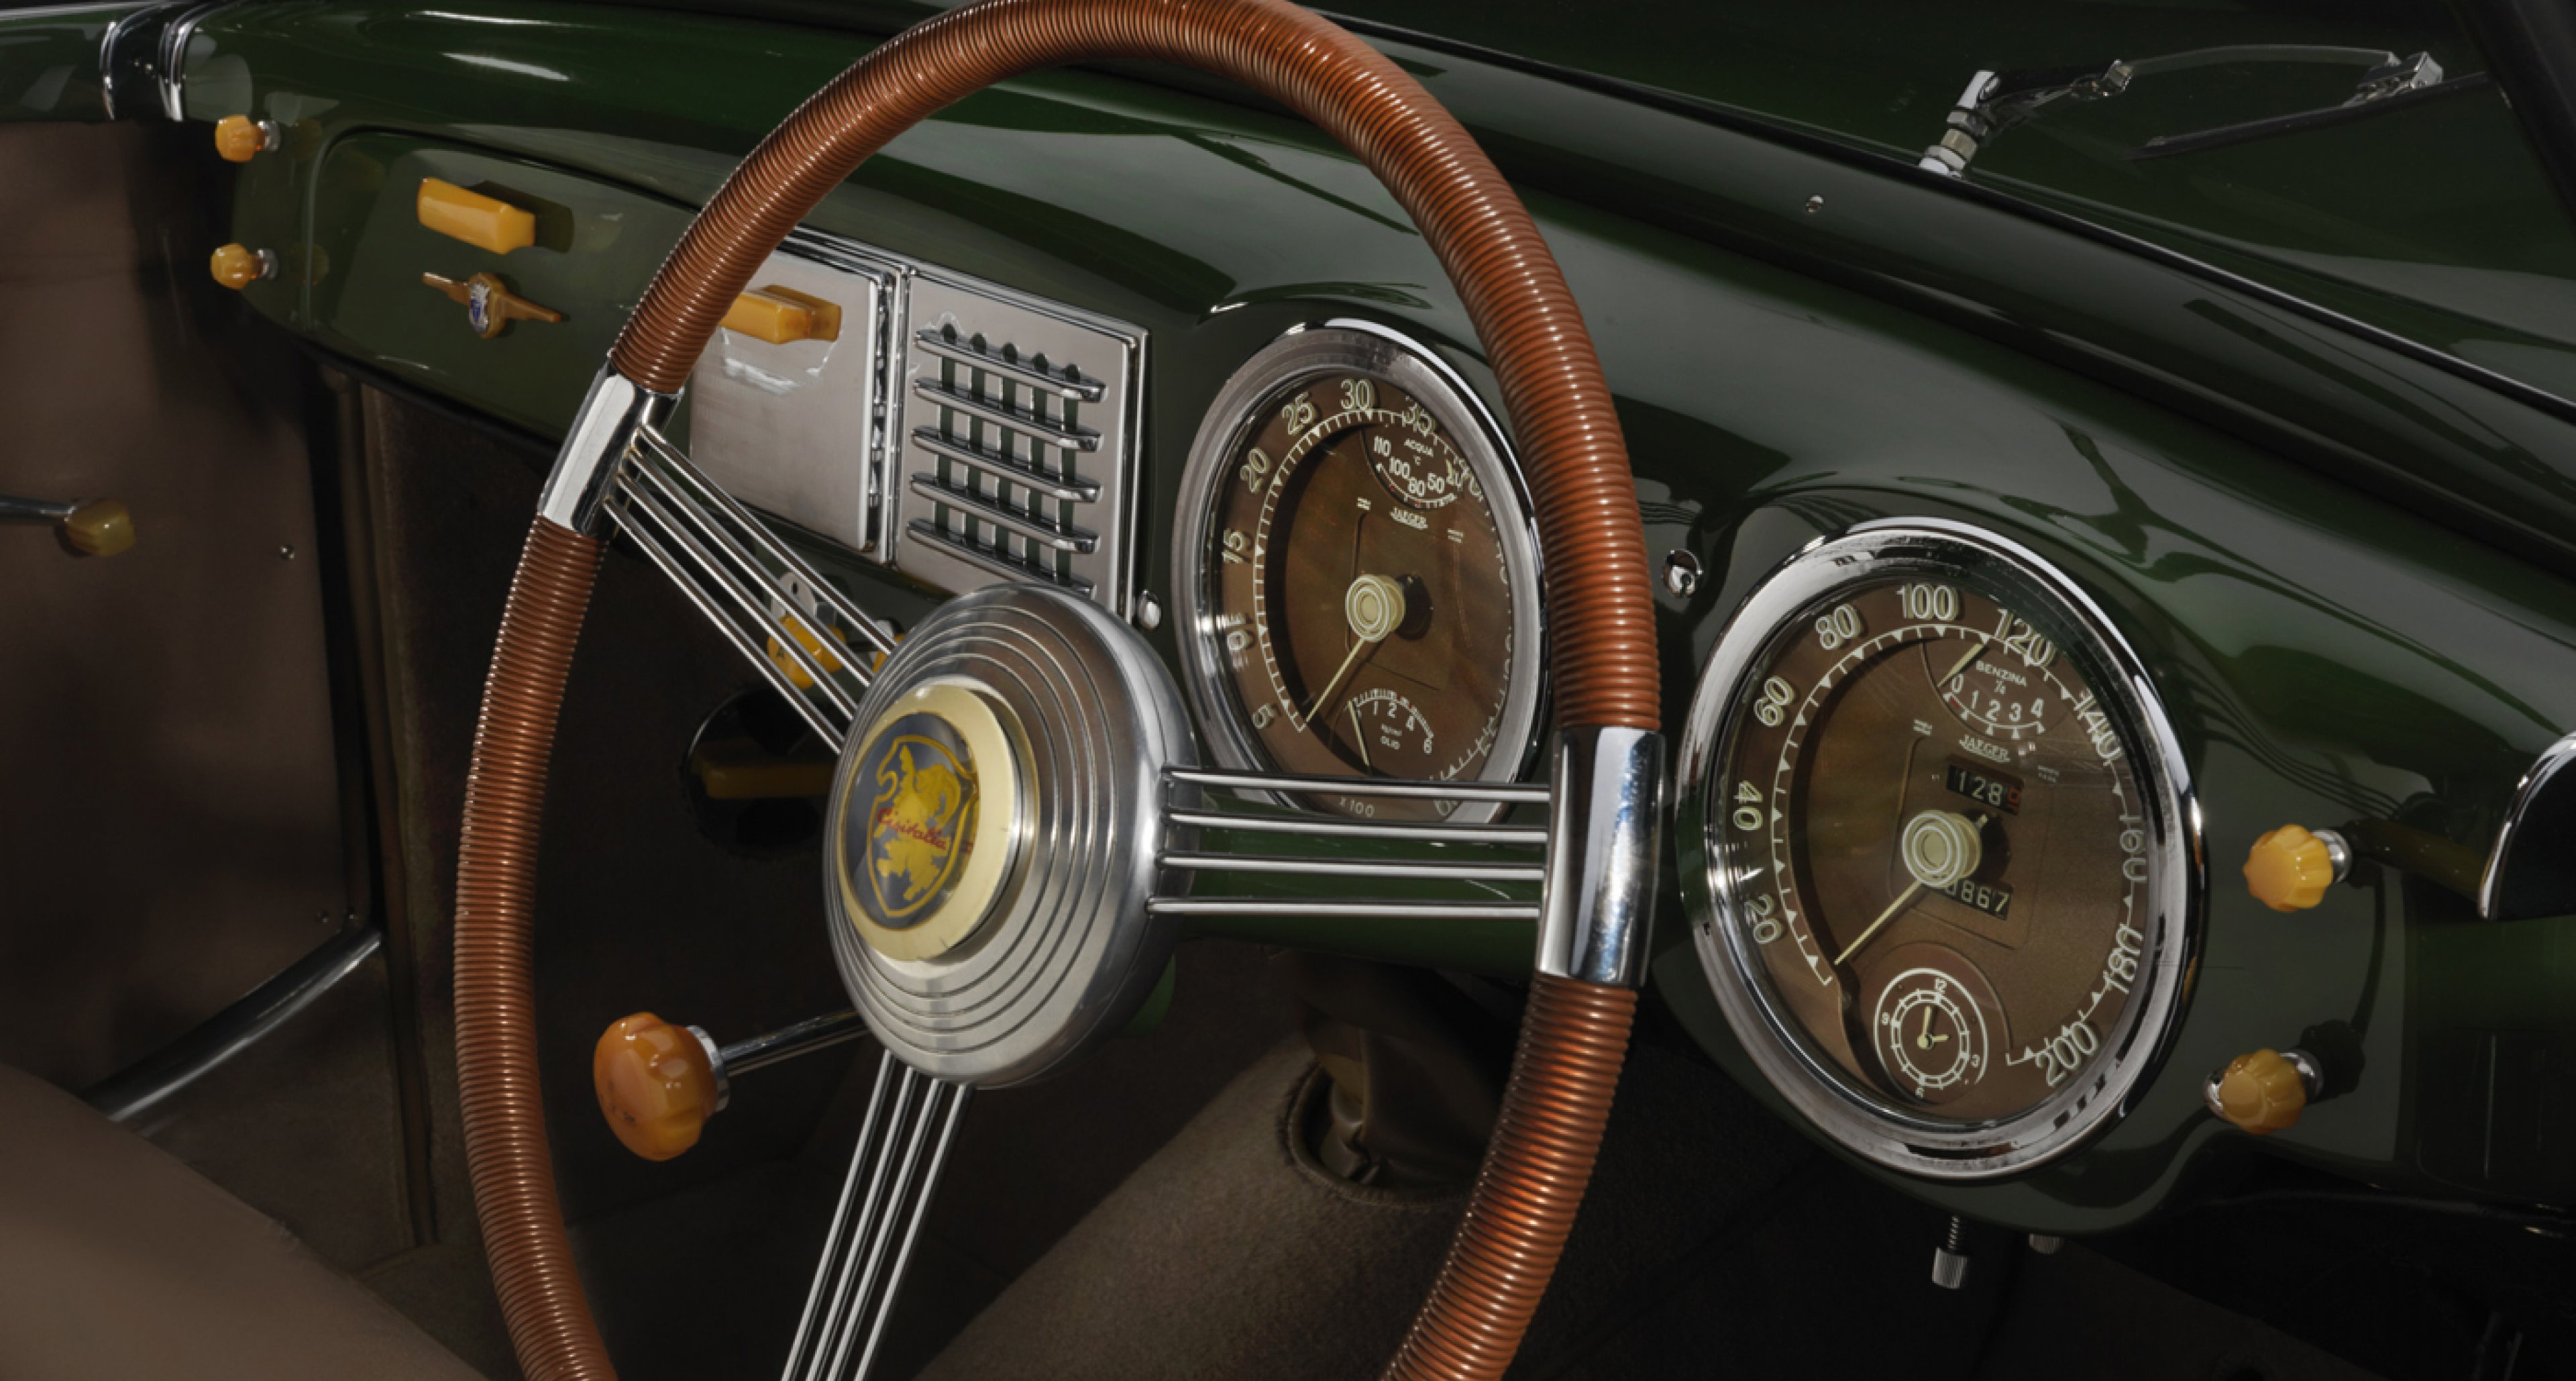 1950 Cisitalia 202 SC. Collection of the Revs Institute for Automotive Research. Image © 2015 Peter Harholdt